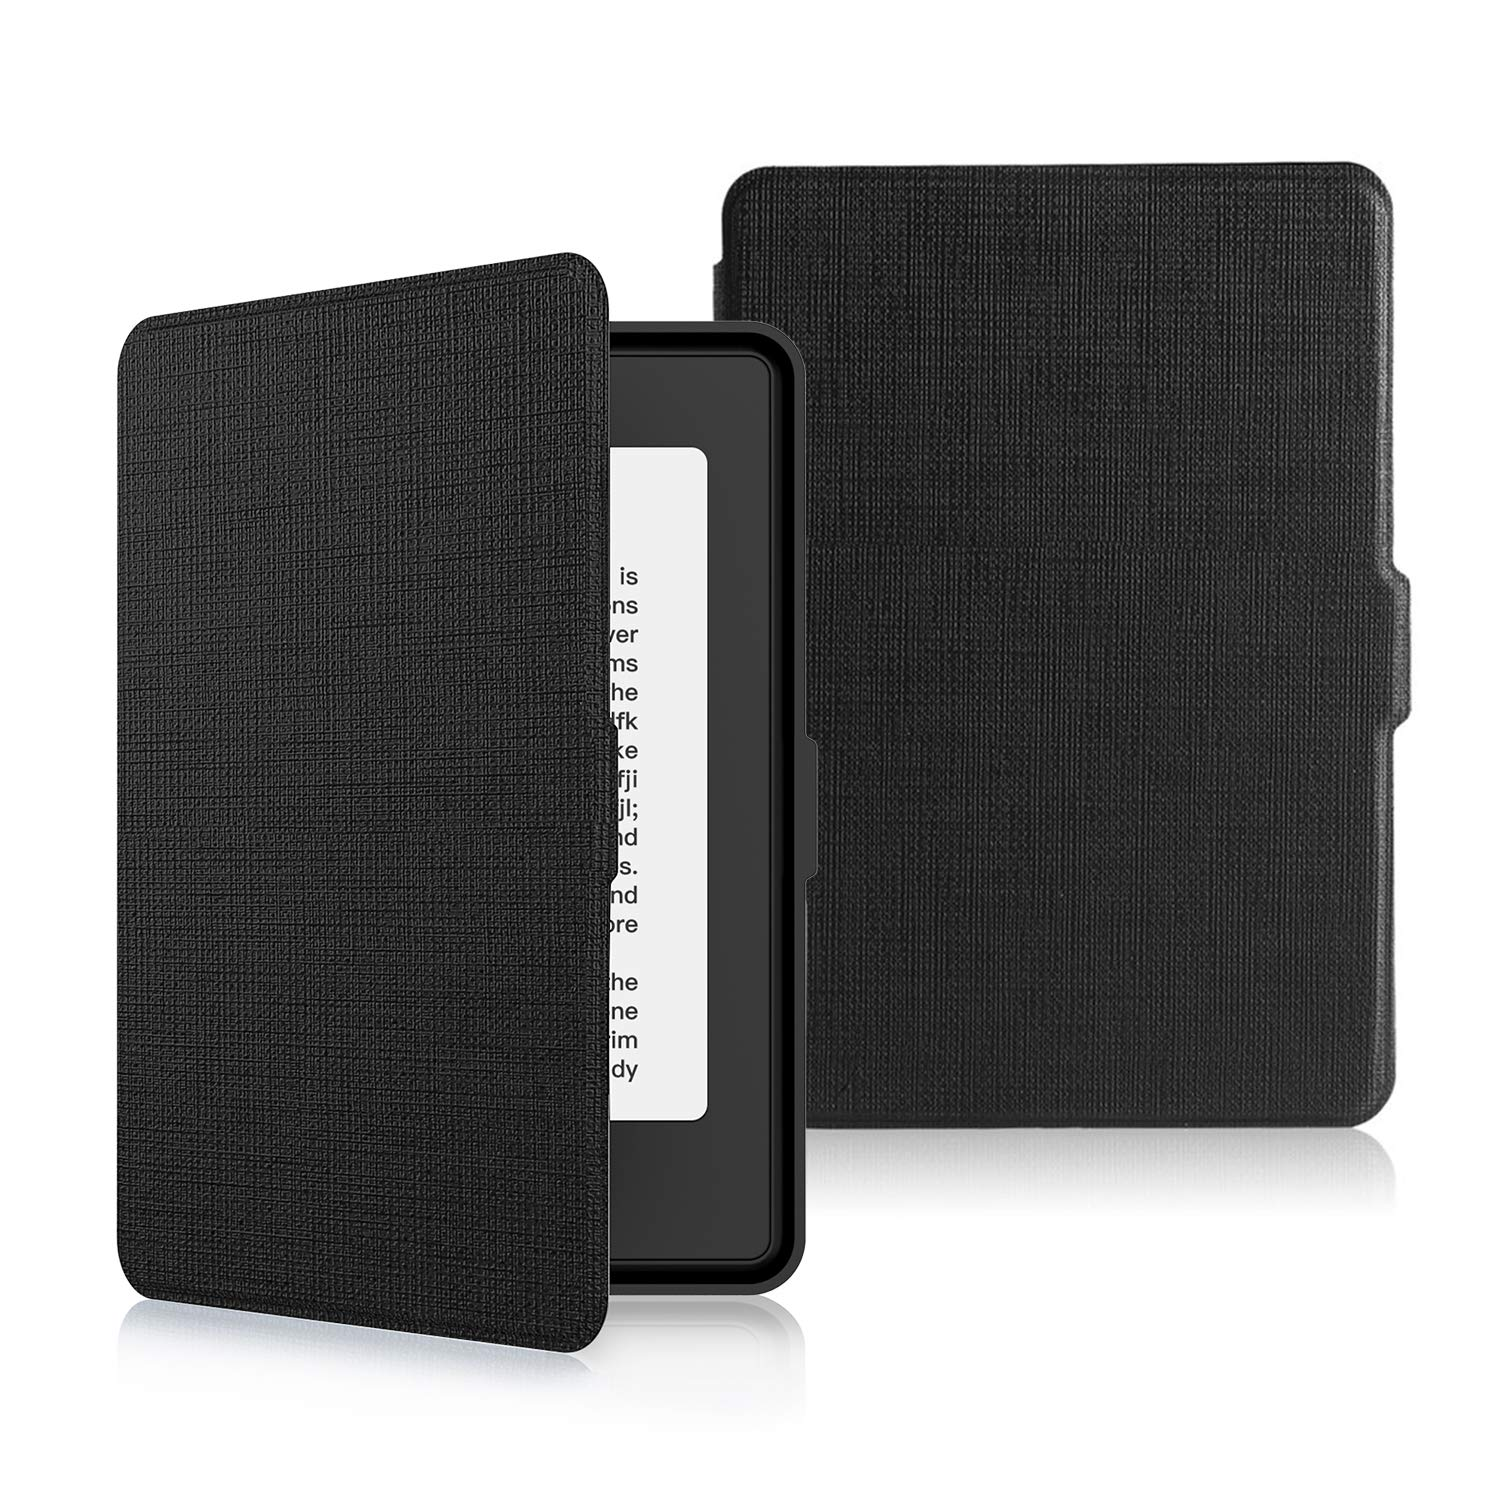 Kindle Paperwhite Cases Lightweight Thinnest Shell Cover Magnetic PU Leather Case, Auto Wake / Sleep E-reader Protective Case For Kindle Paperwhite 3 / 1 / 2, Black